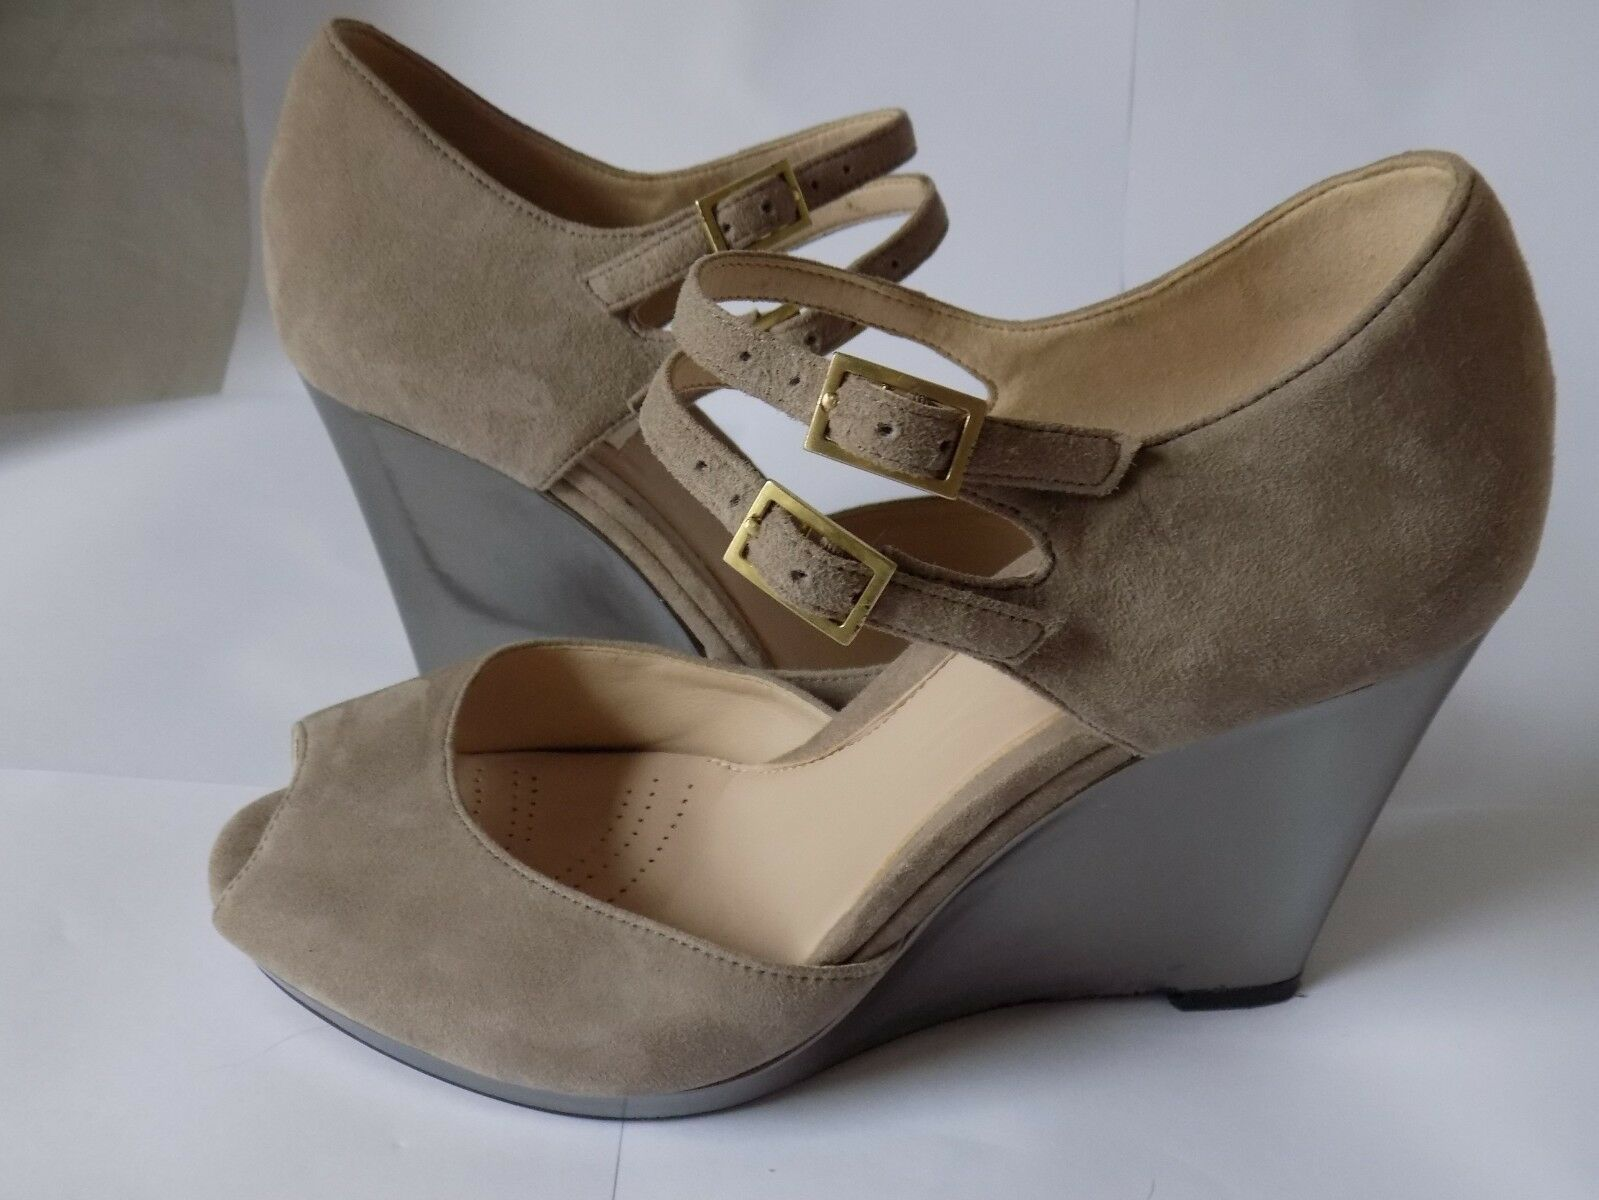 CLARKS LADIES WITH TAUPE SUEDE  LEATHER WITH LADIES  METALIC   WEDGE SANDALS  STD 302aa2